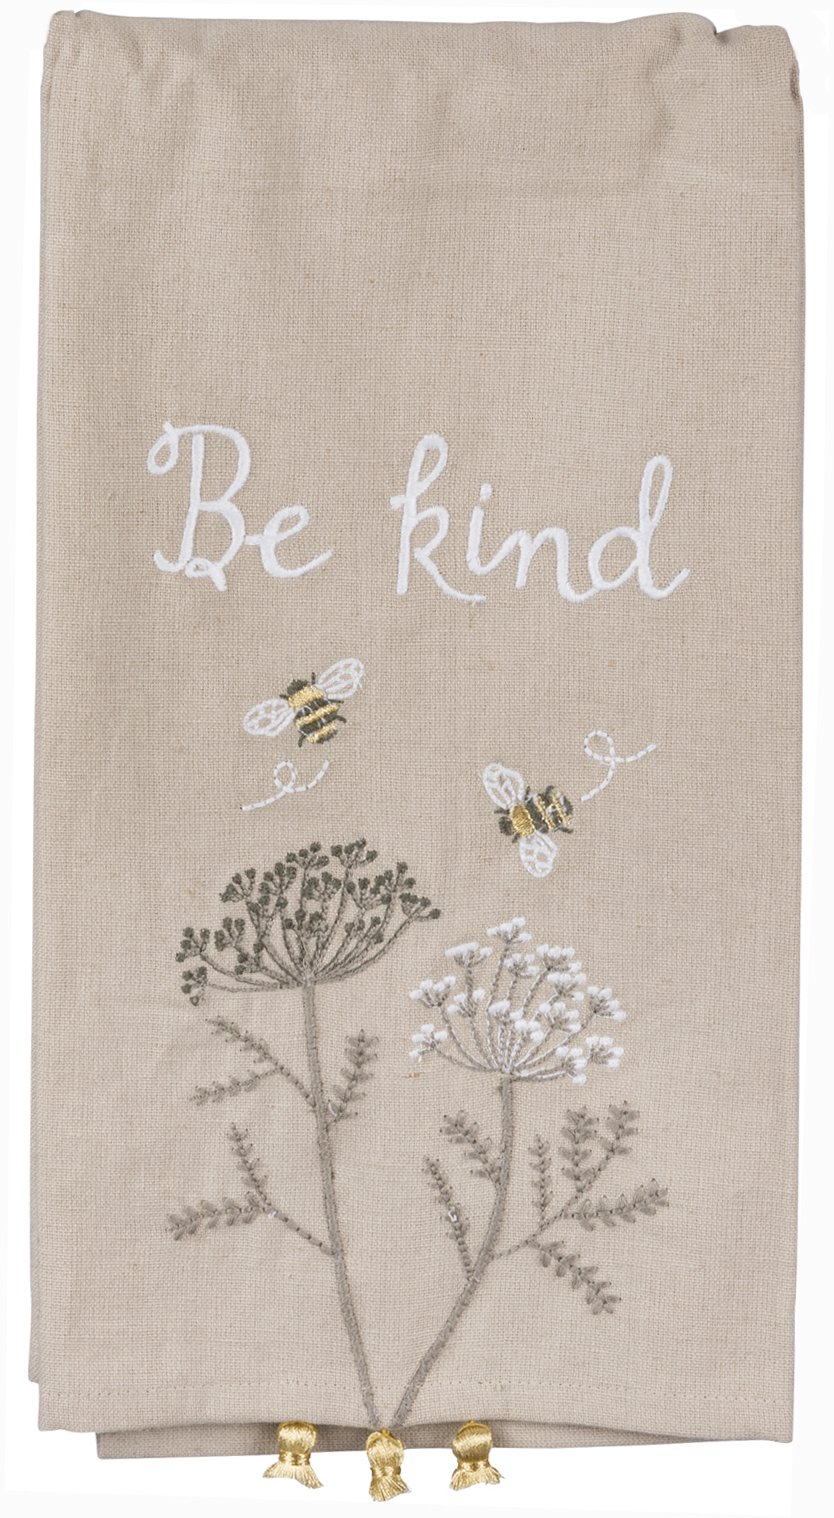 Primitives by Kathy Be Kind Kitchen Towel - Embroidered Bumblebees and Flowers - 20'' x 26'' Premium Cotton/Linen Dishtowel with Tassel Accents - 2018 Botanical Collection